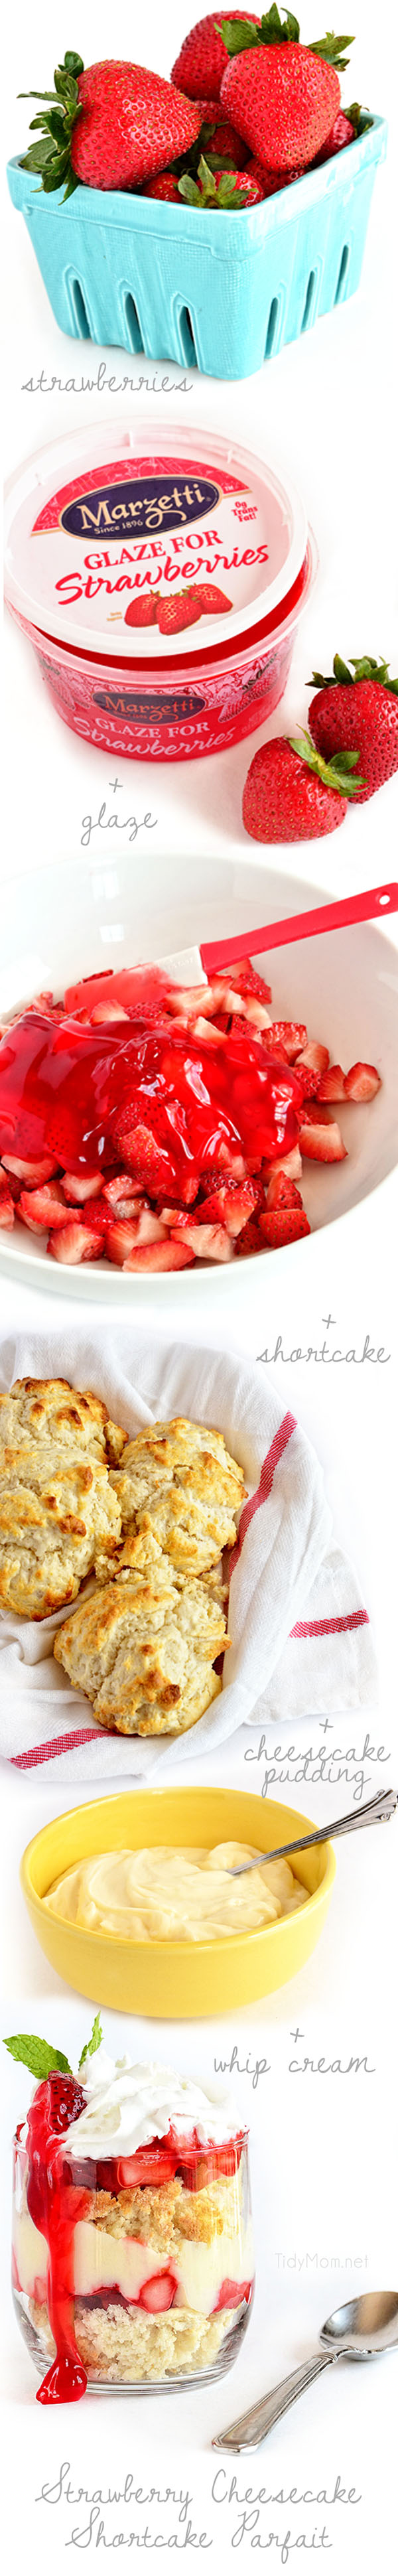 How to make Strawberry Cheesecake Shortcake Parfait recipe at TidyMom.net